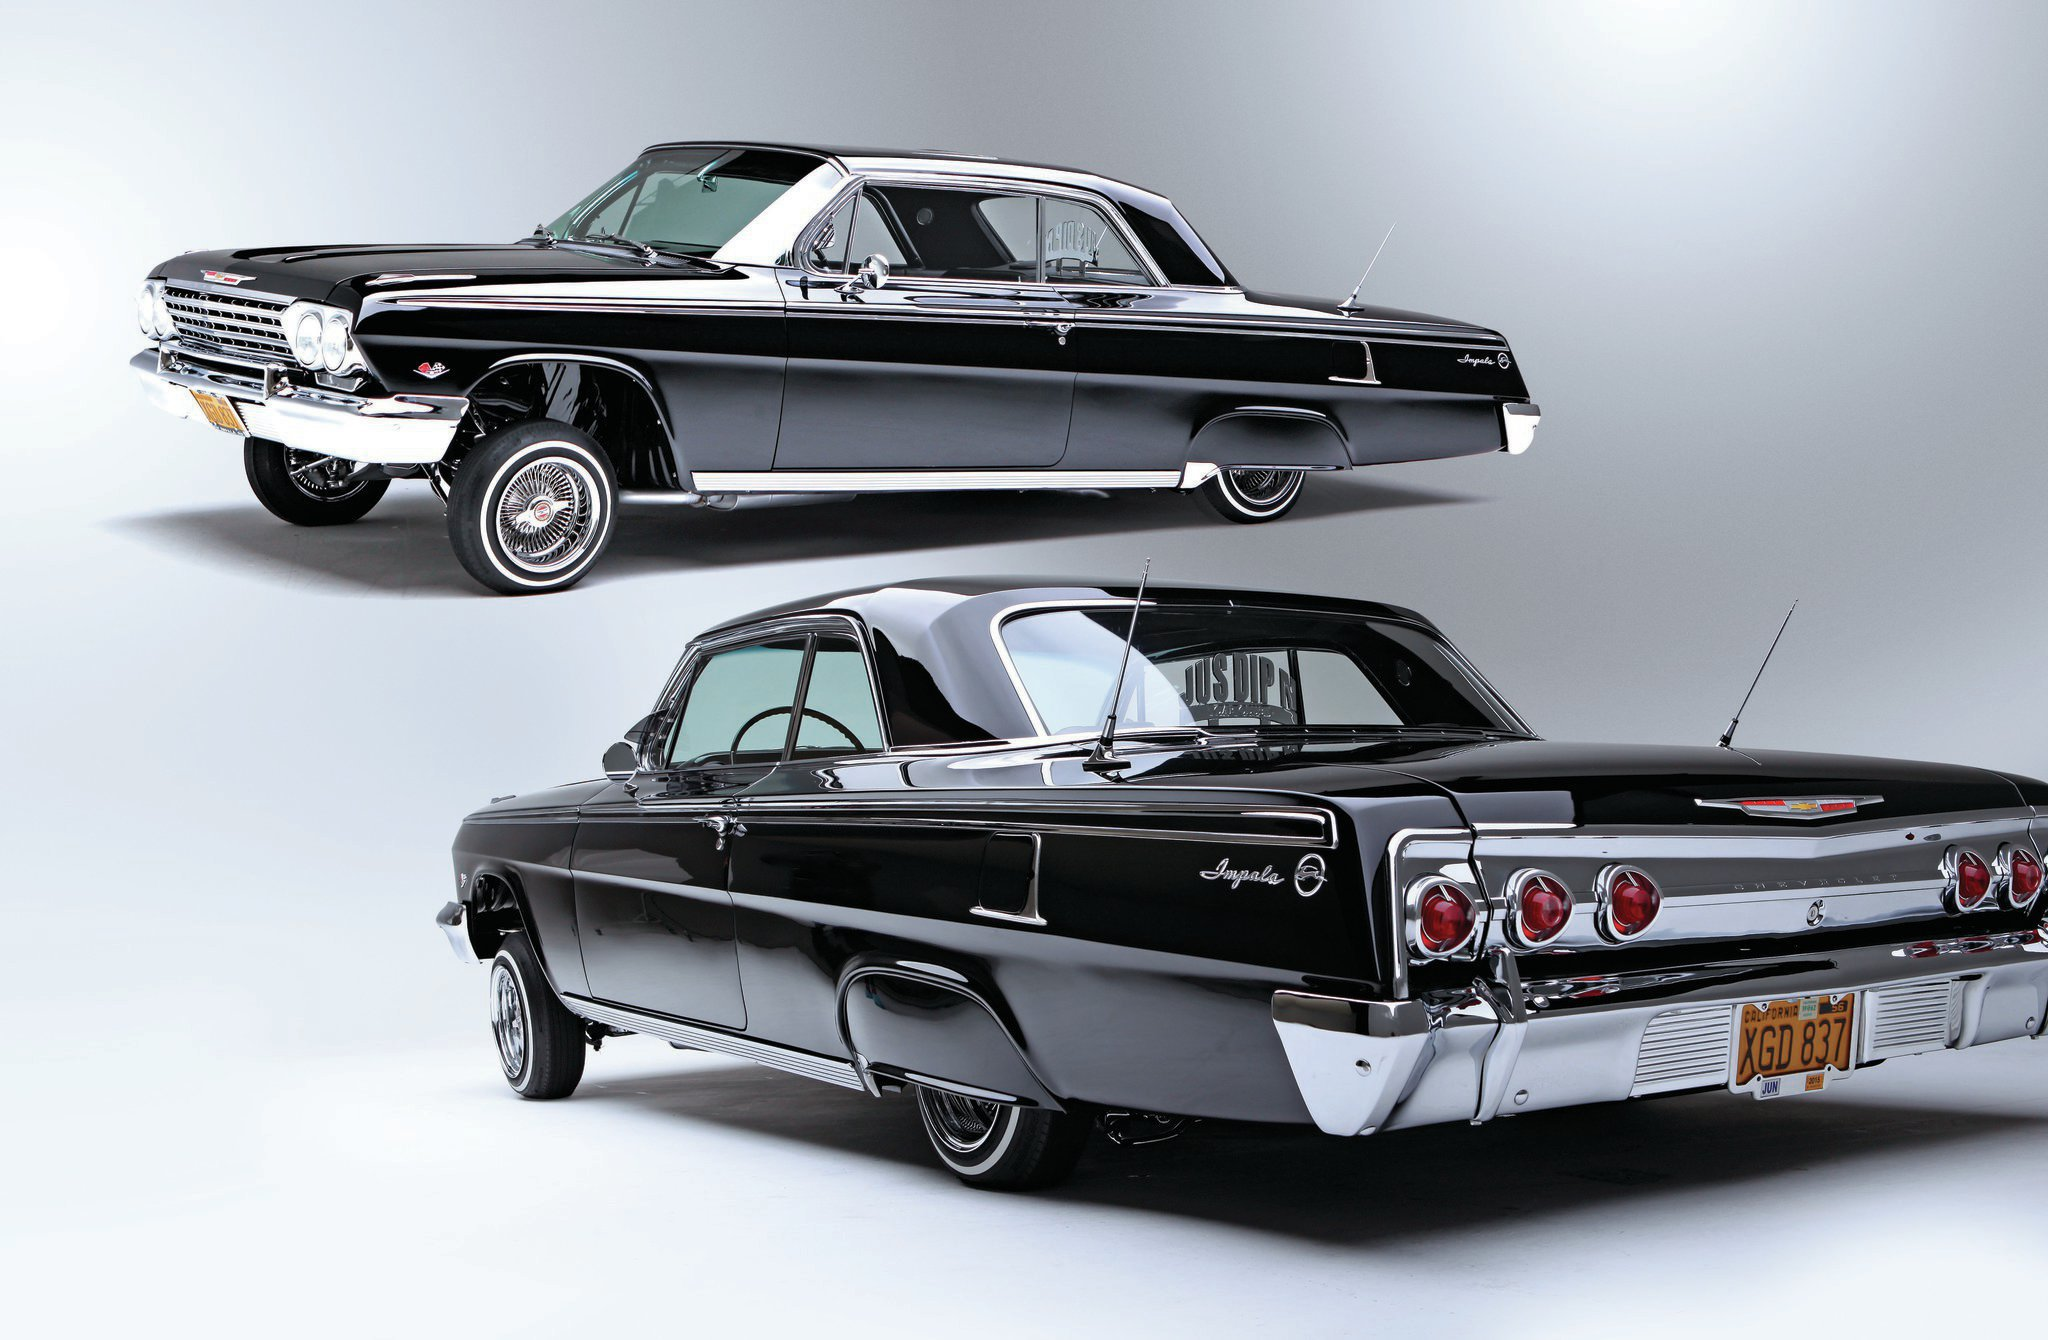 1962 Chevrolet Impala - Black Diamond